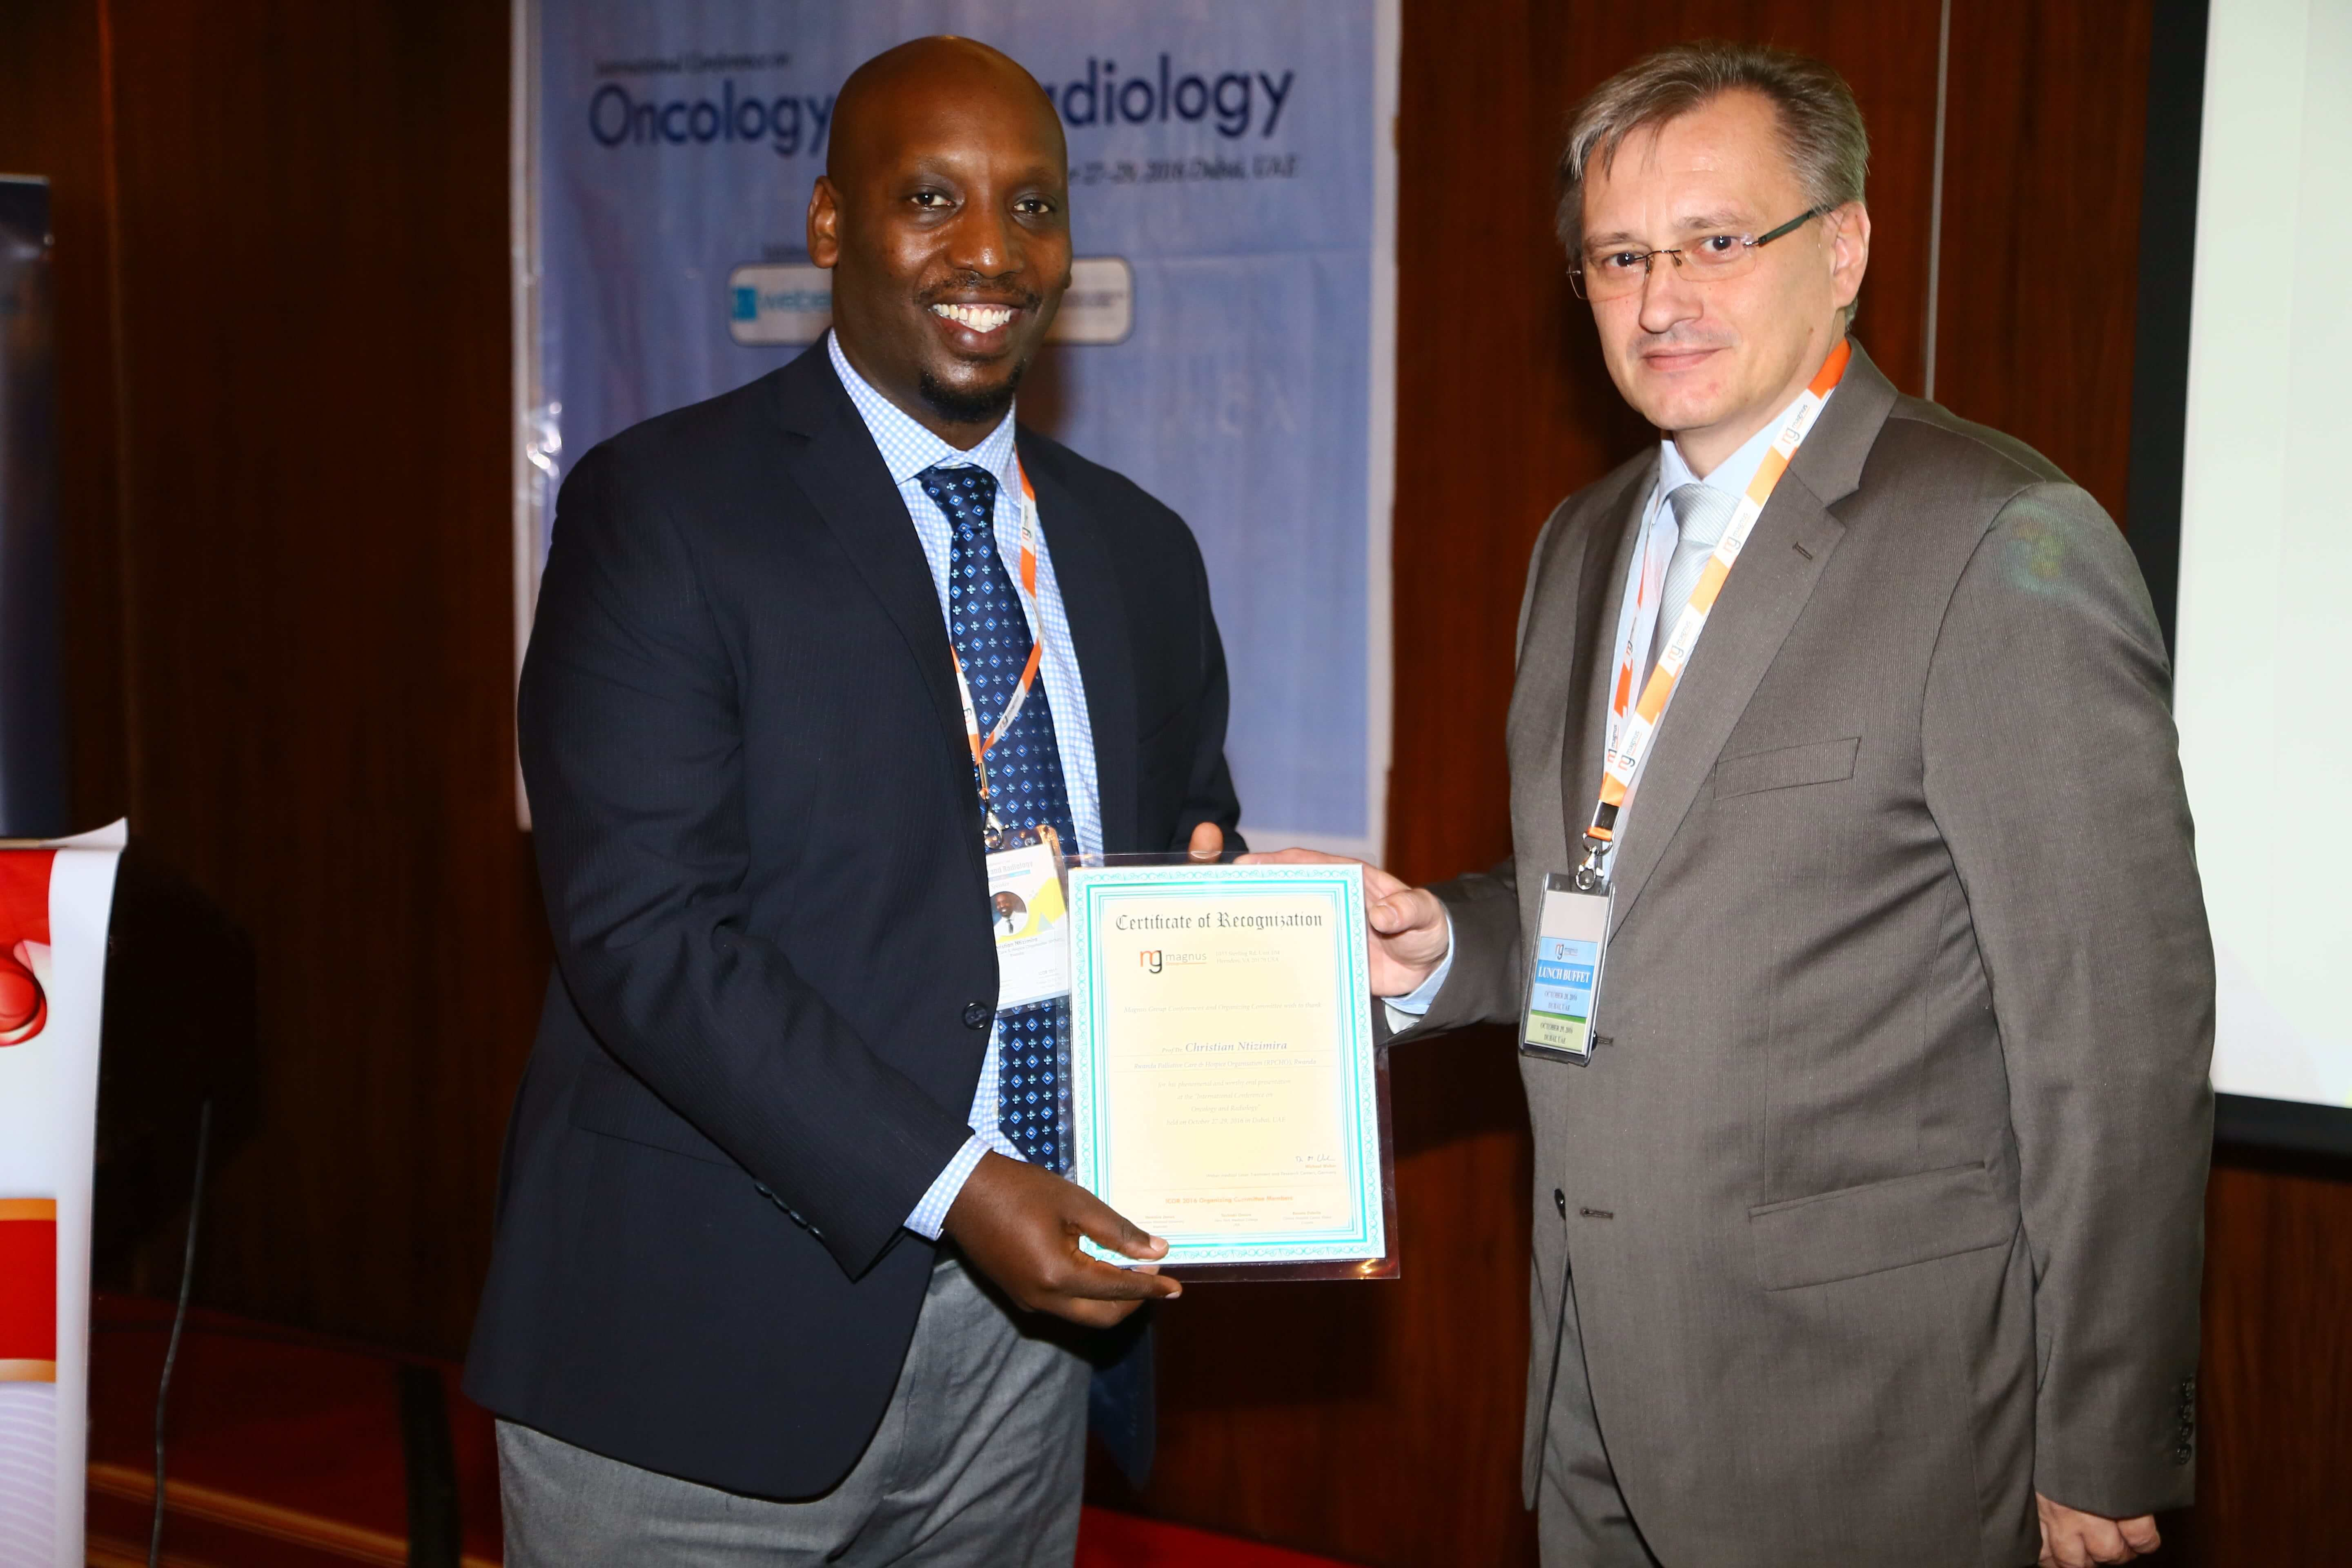 Cancer education conferences - Dr. Christian Ntizimira